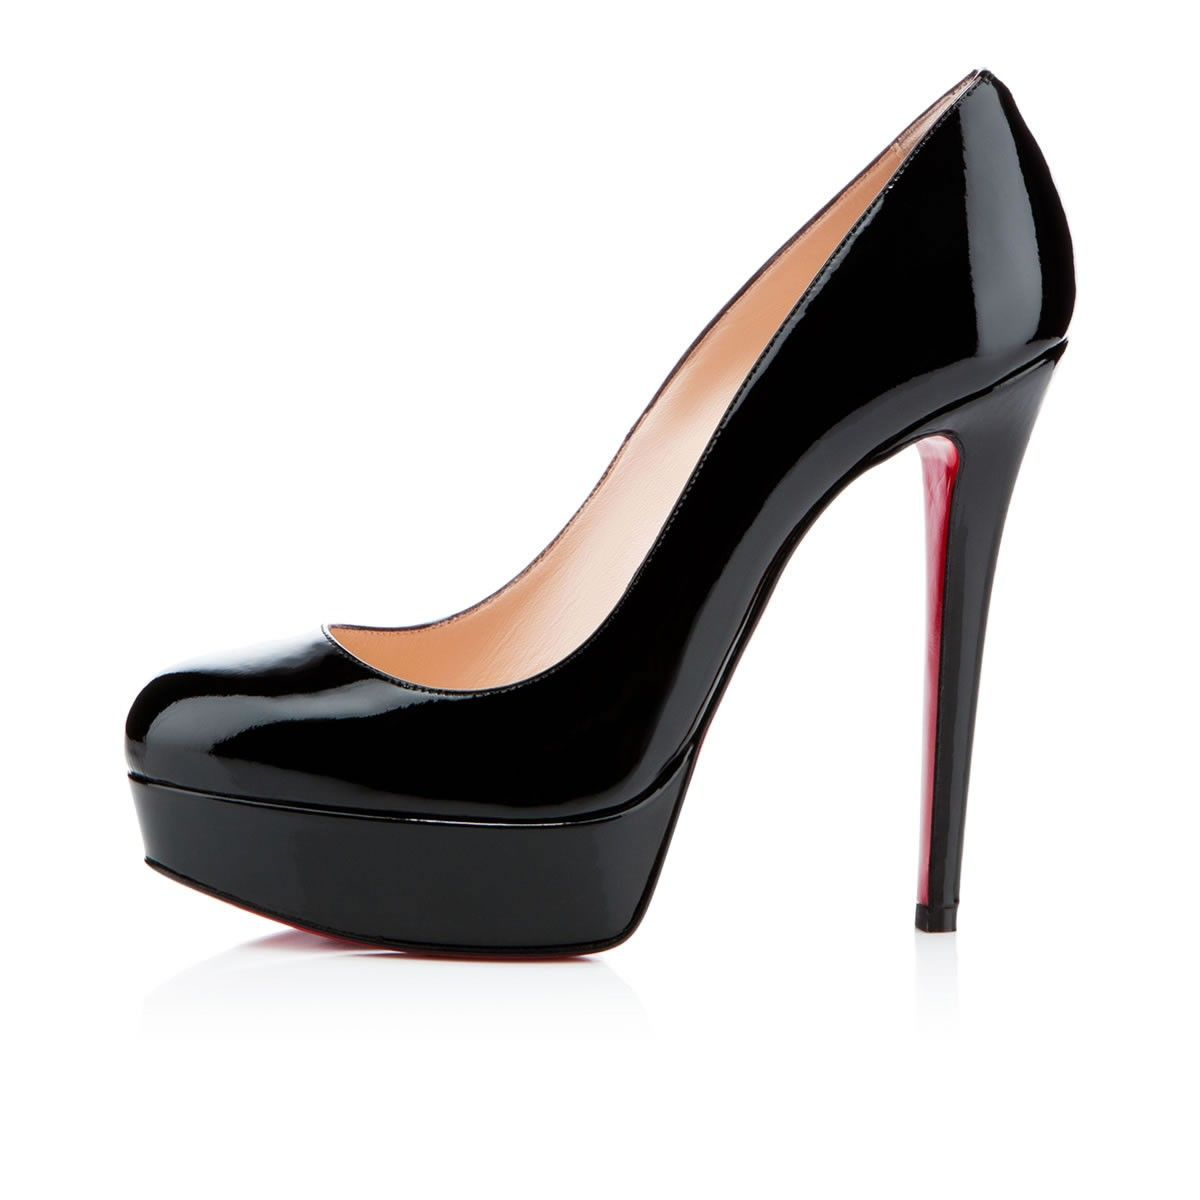 43bdc3fc3206 Christian Louboutin Heels Gotta have the black ones. I want those Louboutin  !! BIANCA VERNI 140 mm